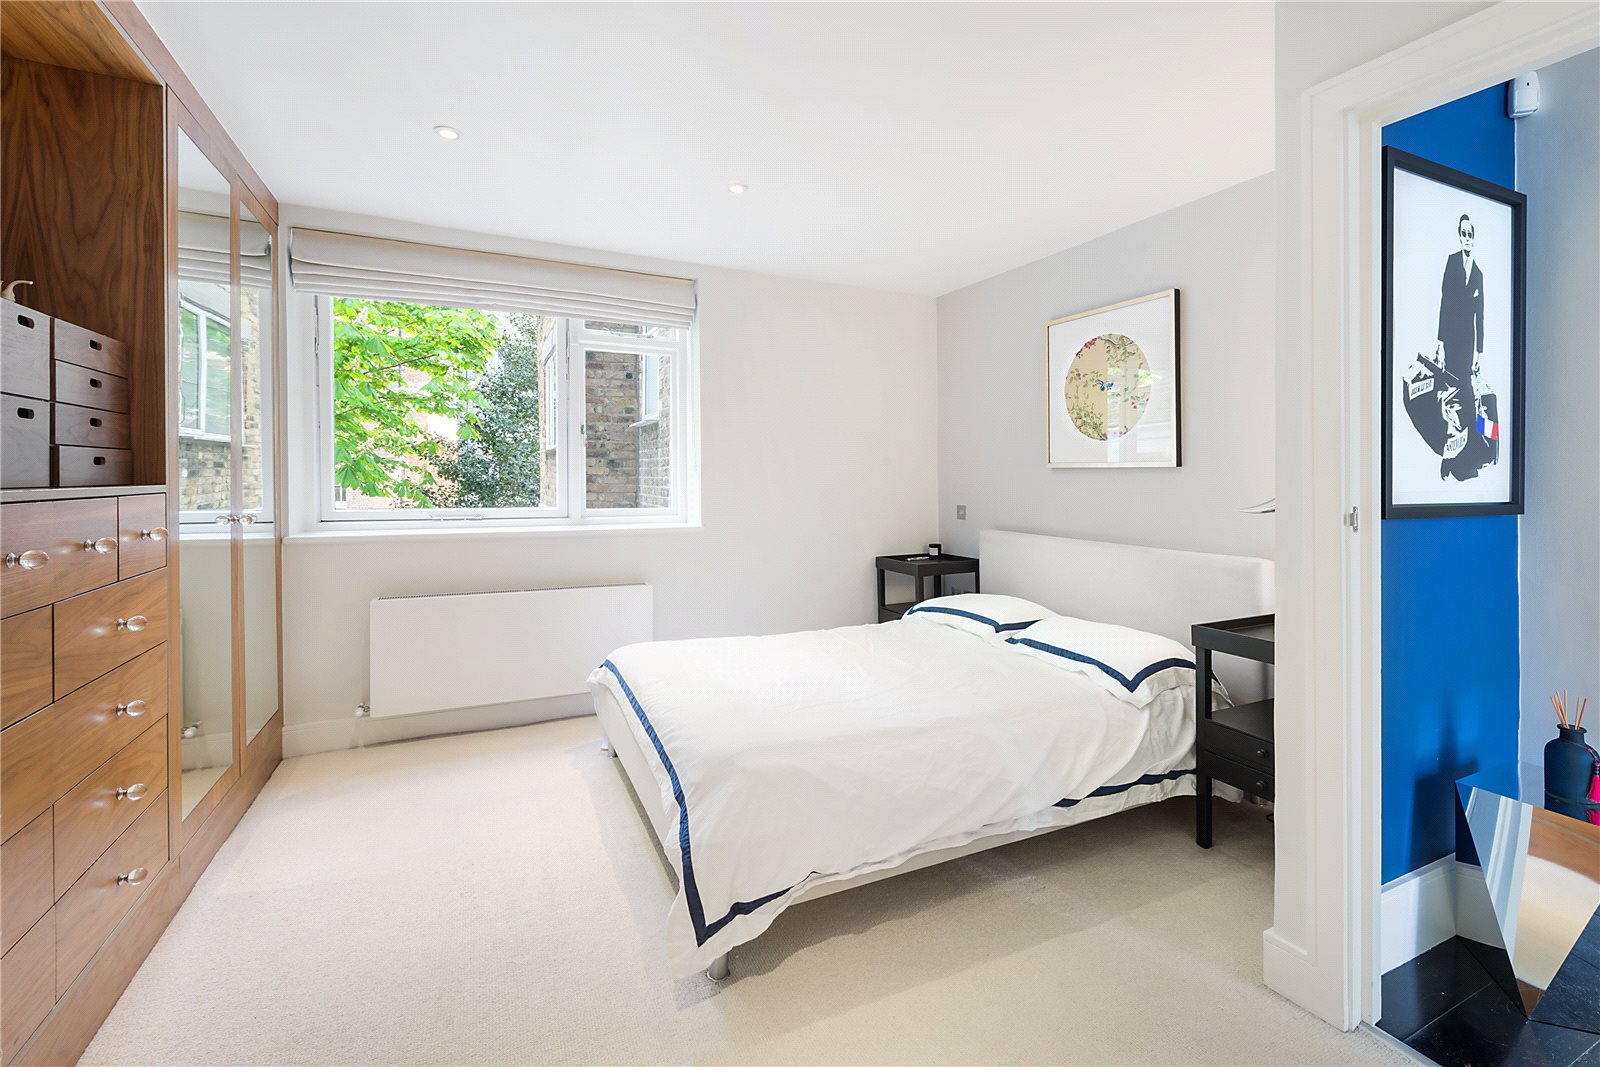 Additional photo for property listing at Bina Gardens, South Kensington, London, SW5 South Kensington, London, Inghilterra